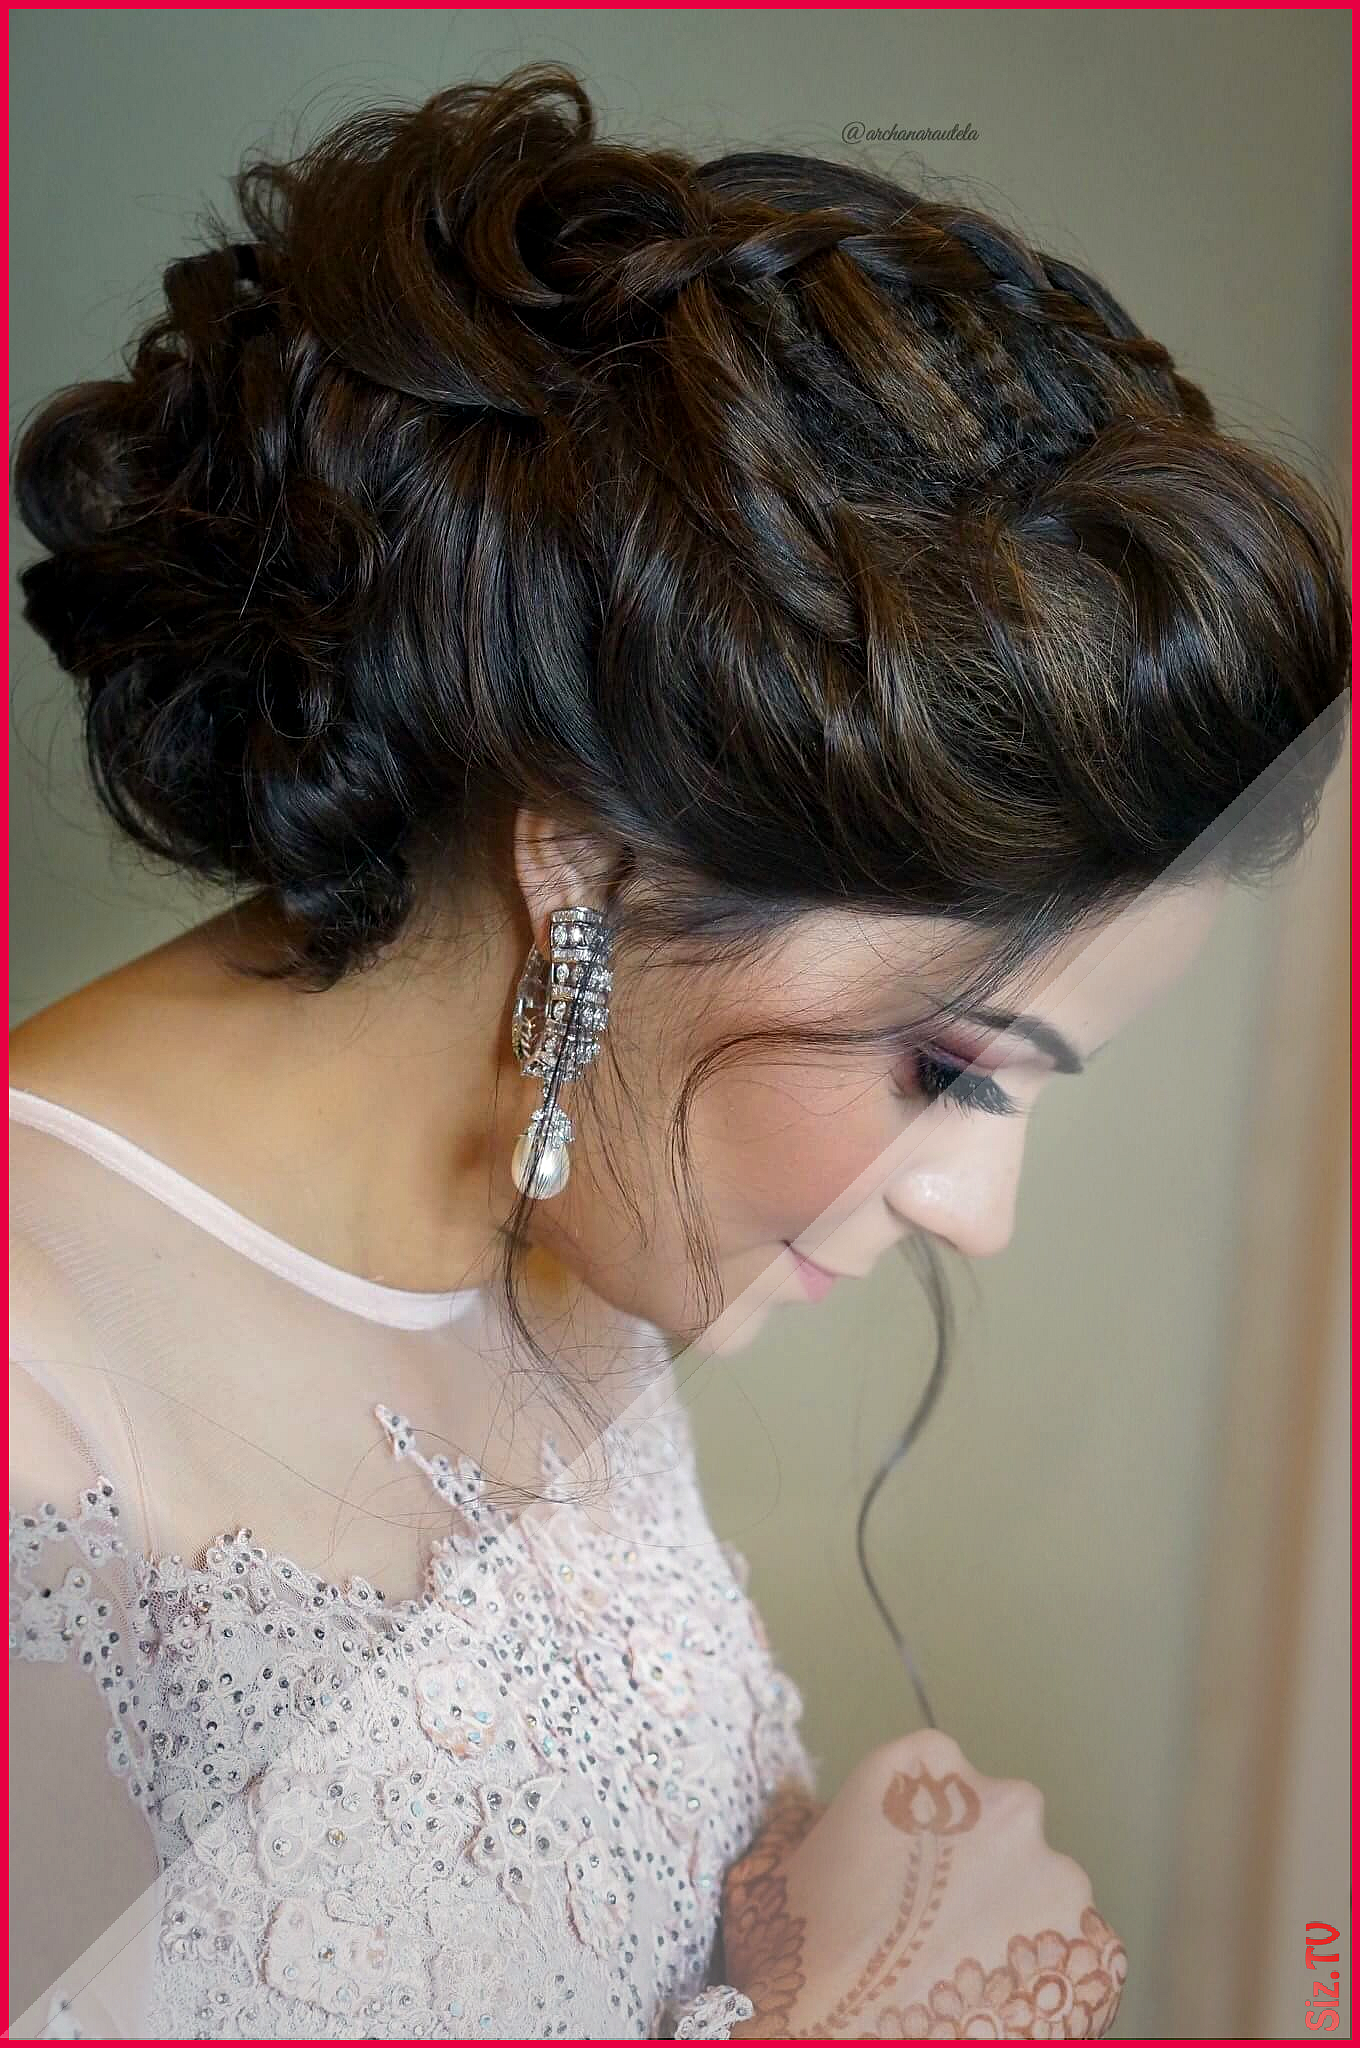 17 Sensational Messy Bun Hairstyles With Gajra 17 S 17 Sensational Messy Bun Hairstyles With Gajra 17 S Messy Bun Hairstyles Bun Hairstyles Messy Hairstyles